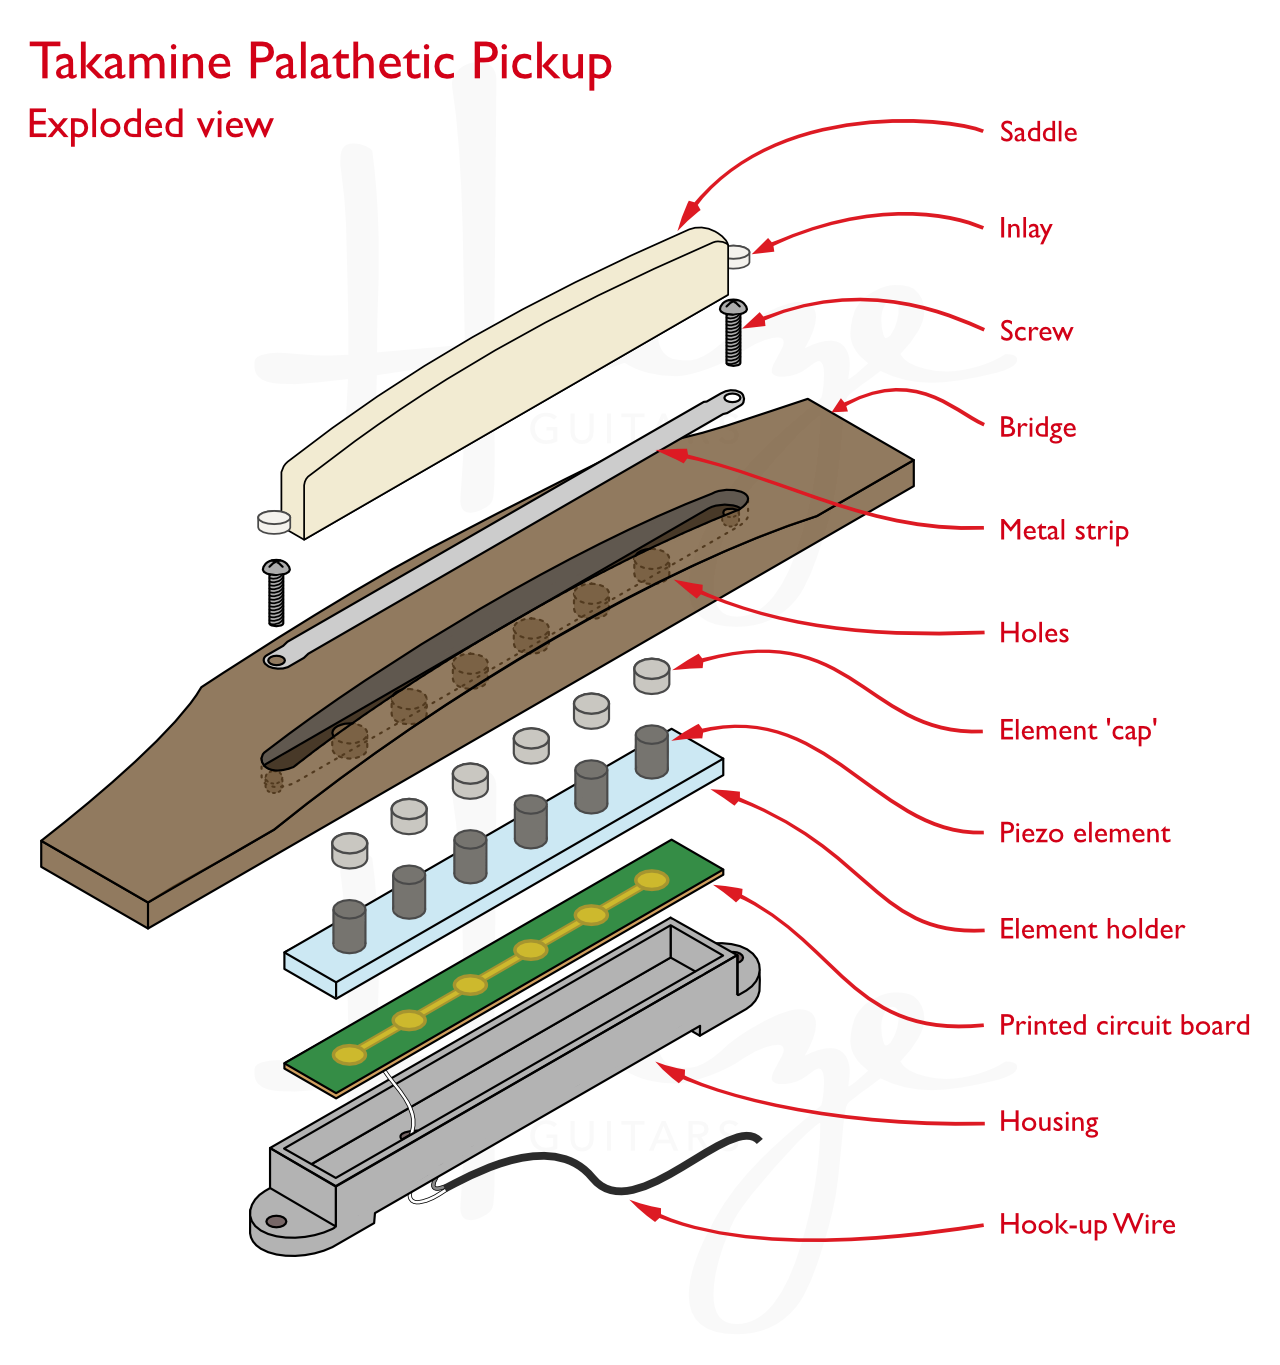 Takamine Palathetic Pickup exploded view of construction